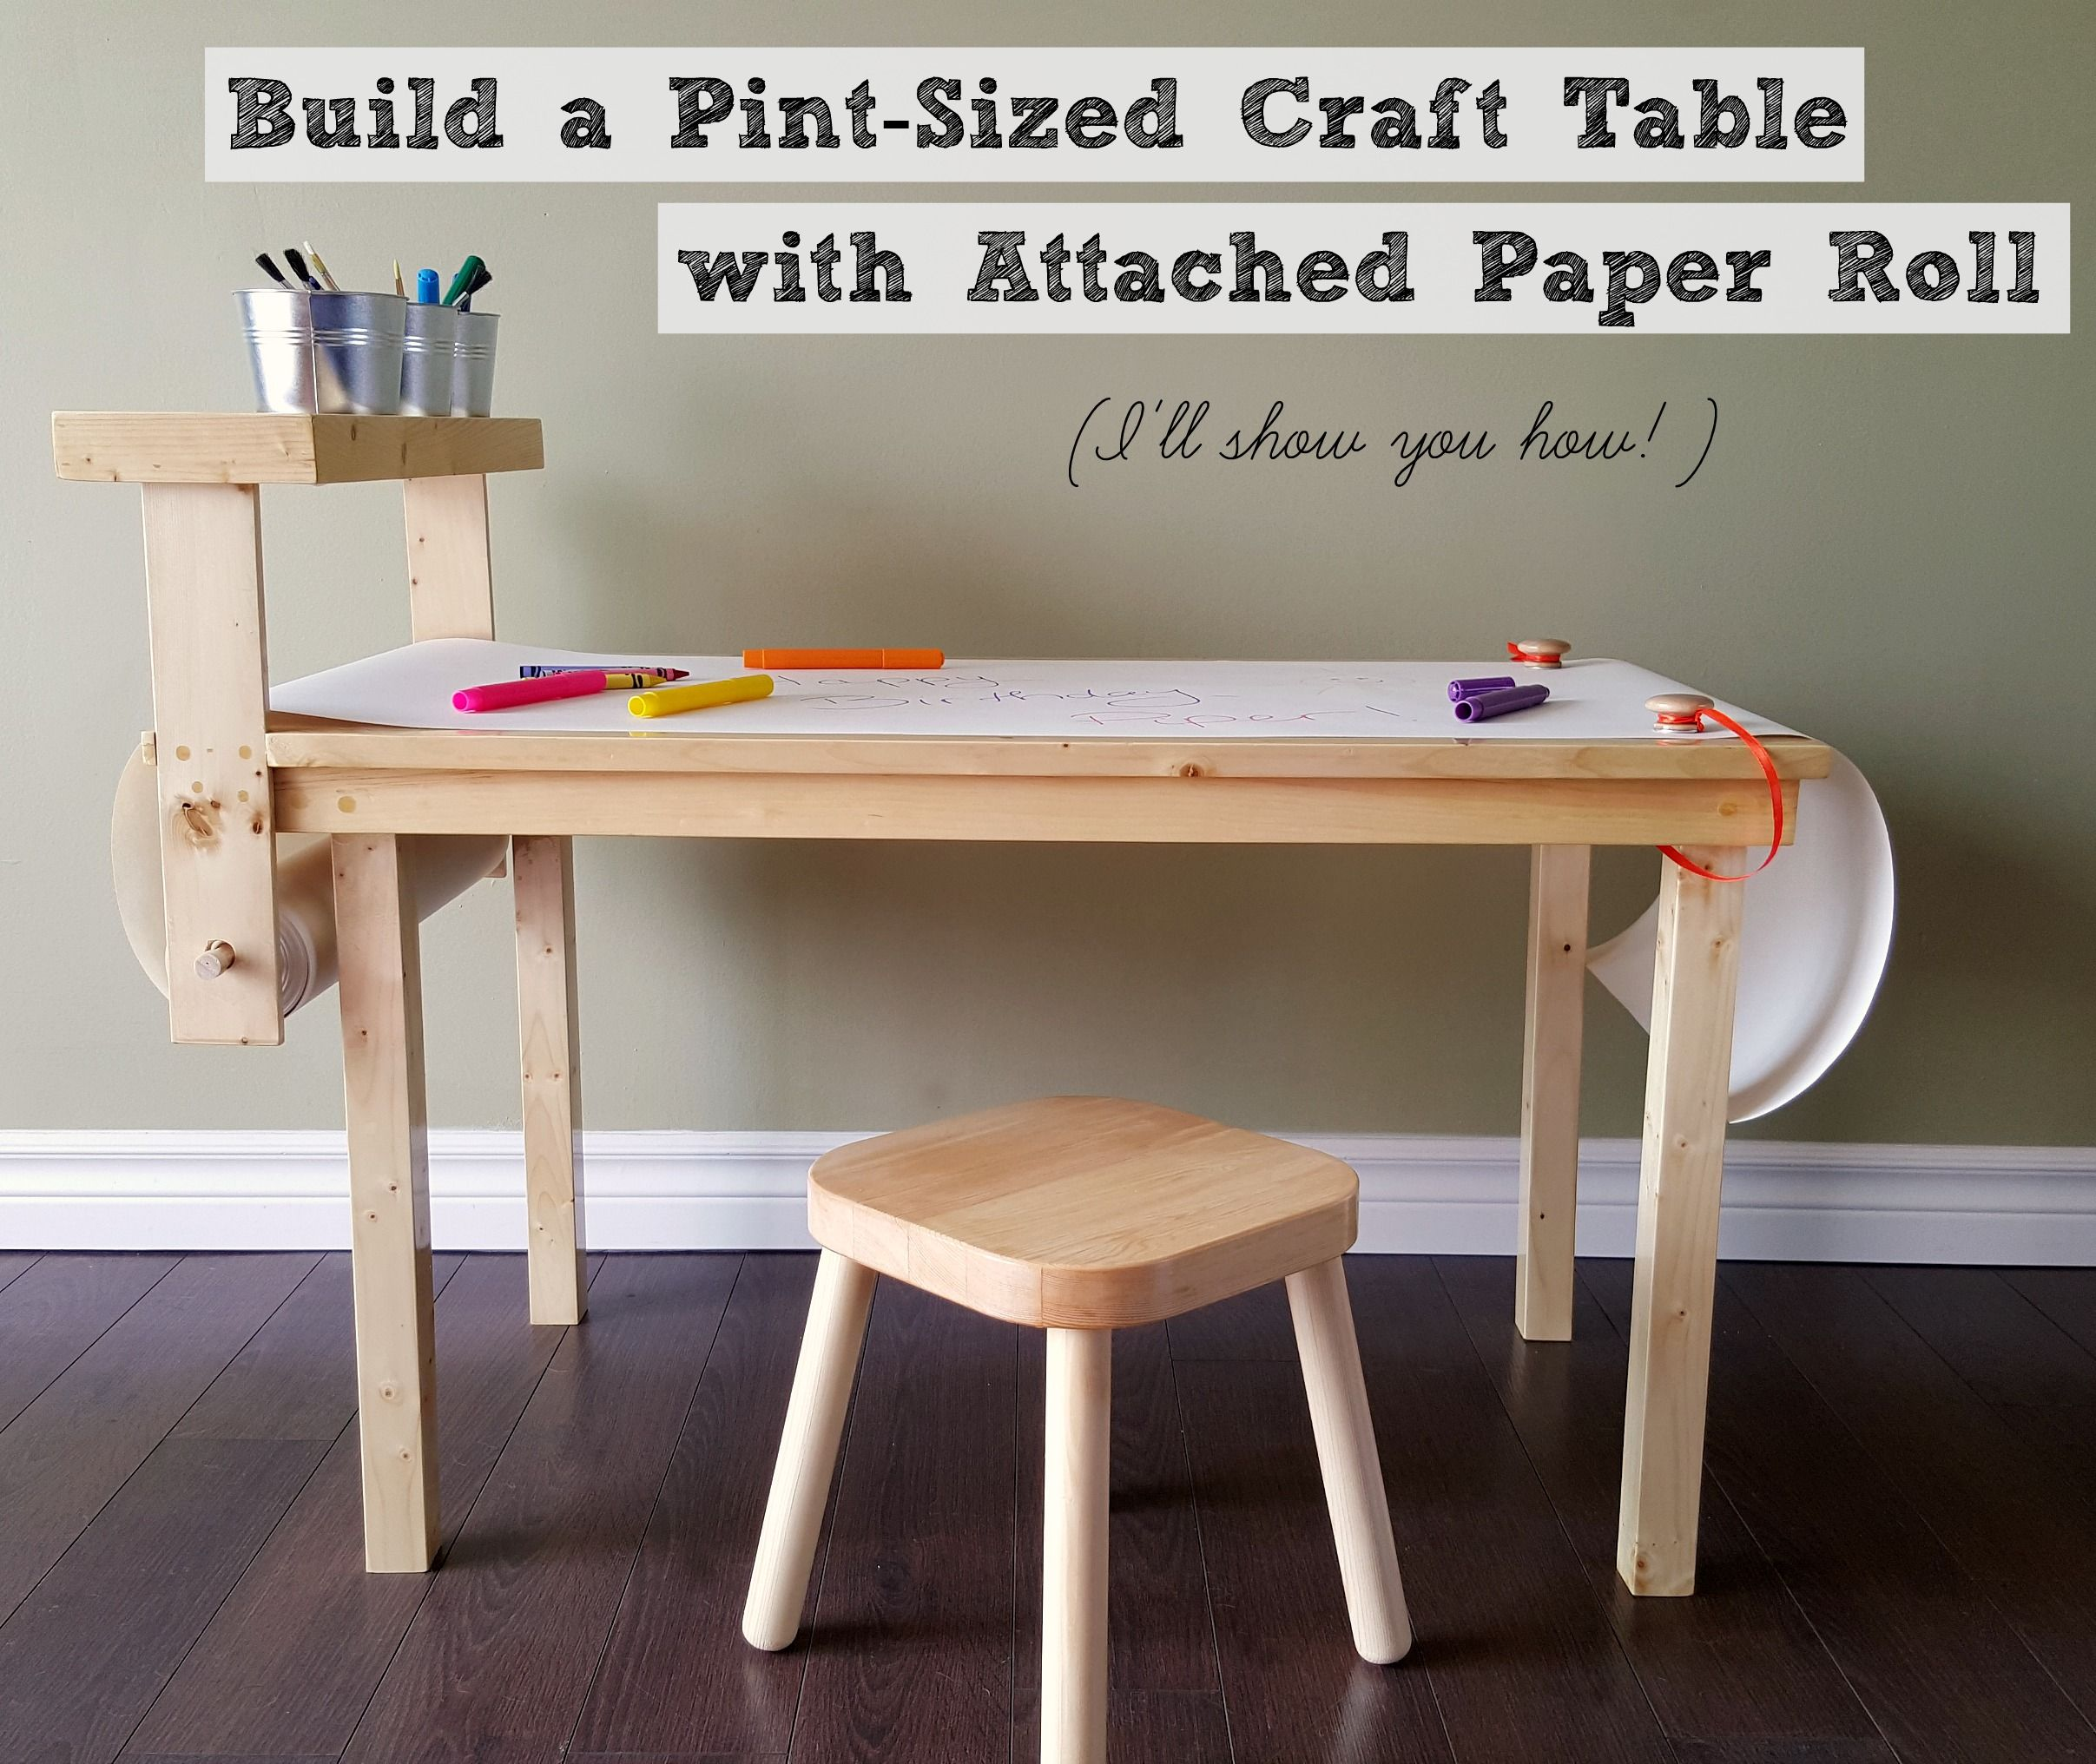 A Diy And Renovation Blog Featuring Building Decorating Crafts Food And Pretty Much Anything Else T Childrens Craft Table Craft Table Diy Kids Craft Tables